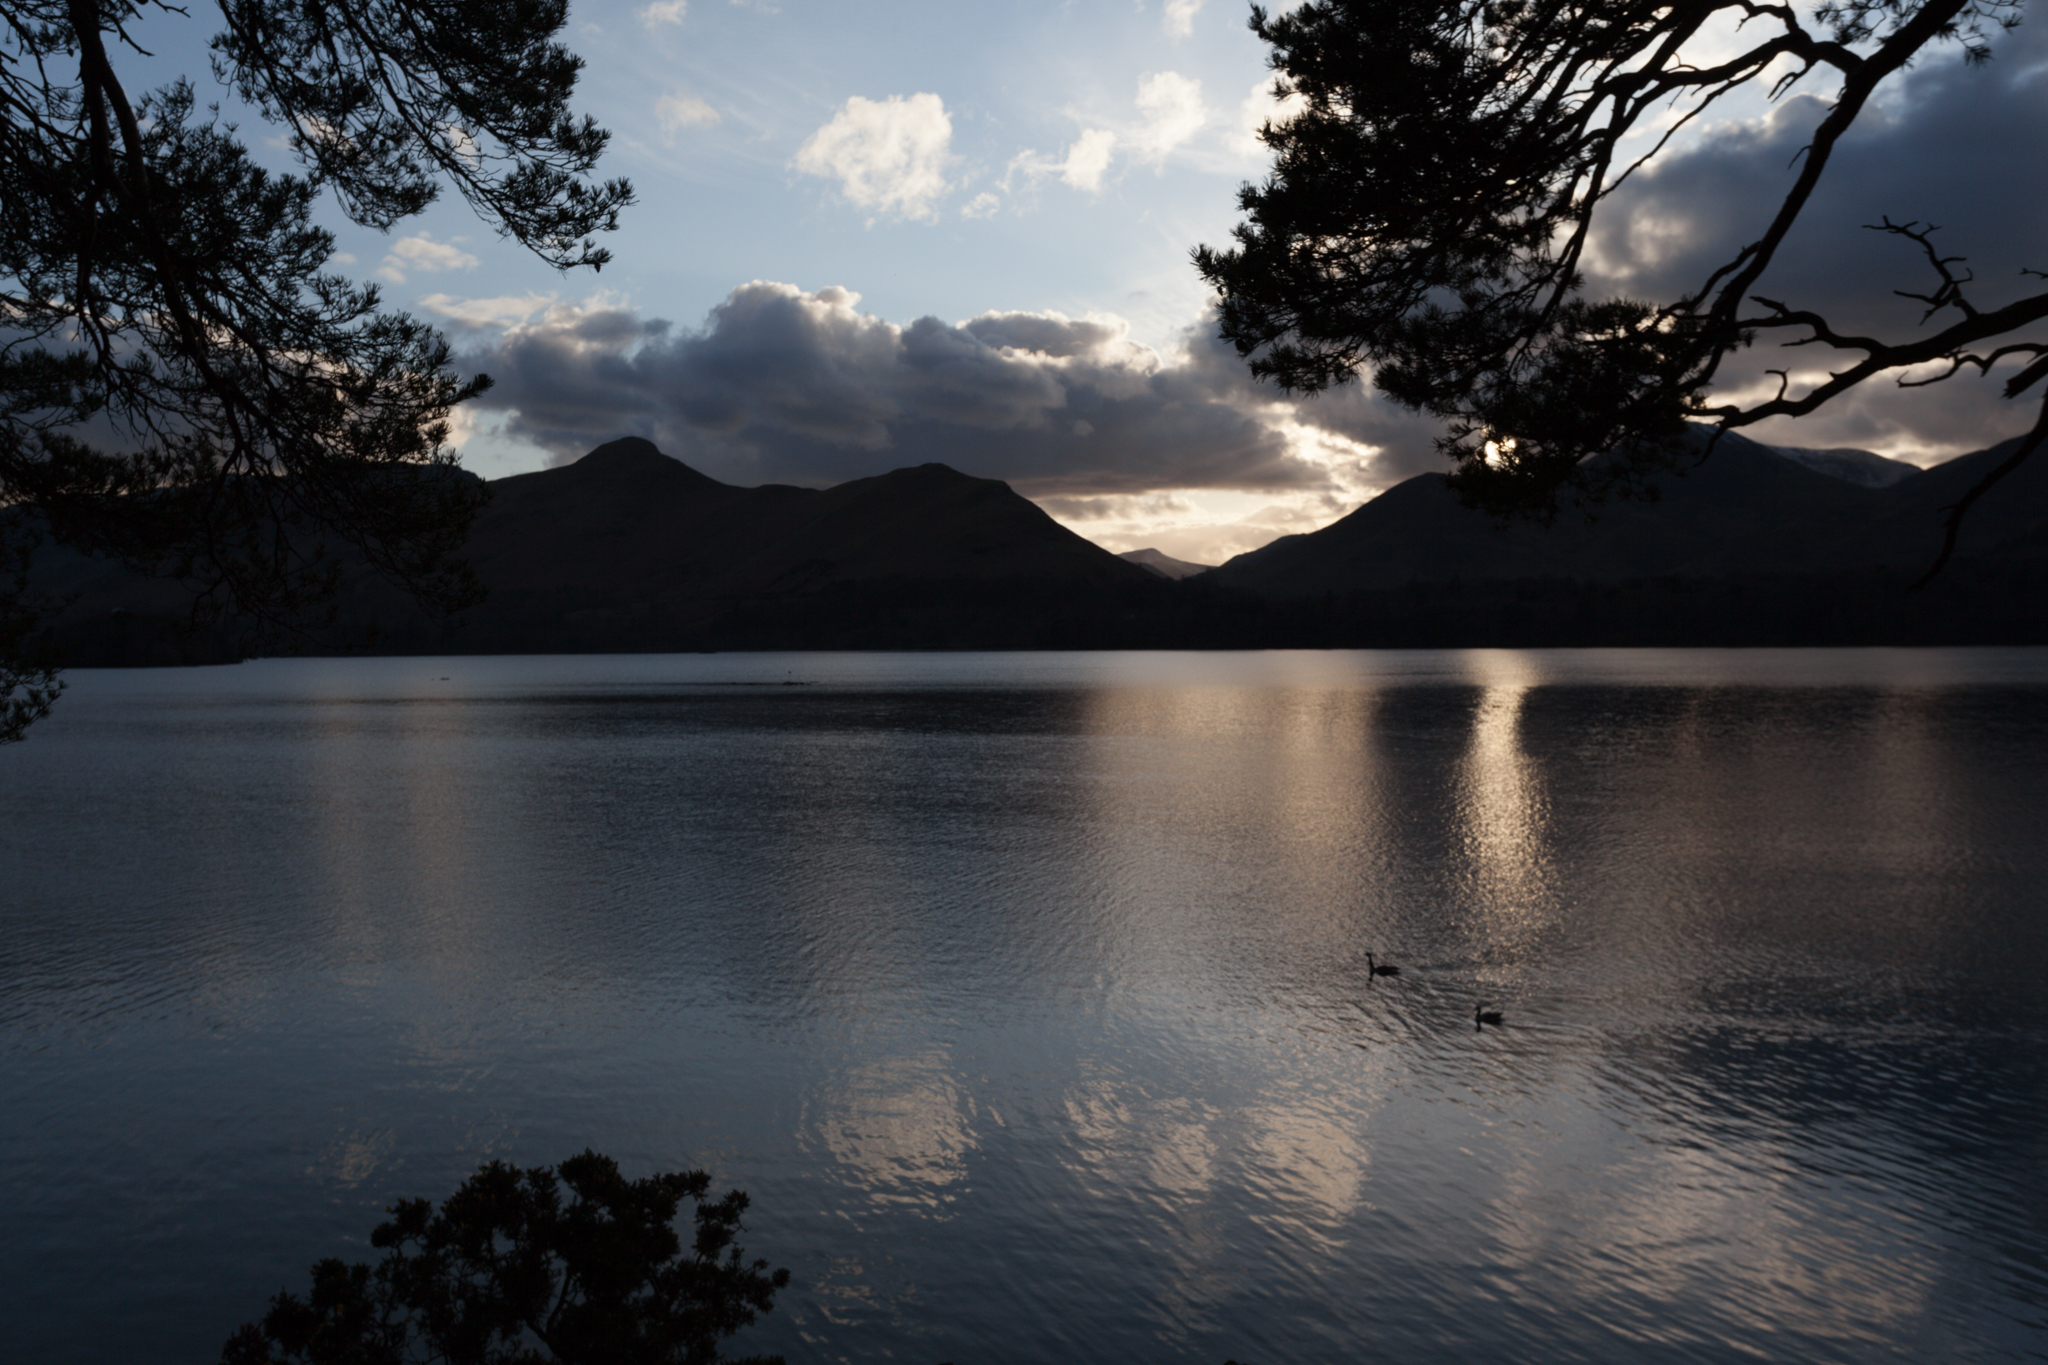 As the sun sets behind Catbells and Causey Pike in the Lake District, two ducks paddle their way across Derwentwater to find their roosting place for the night.